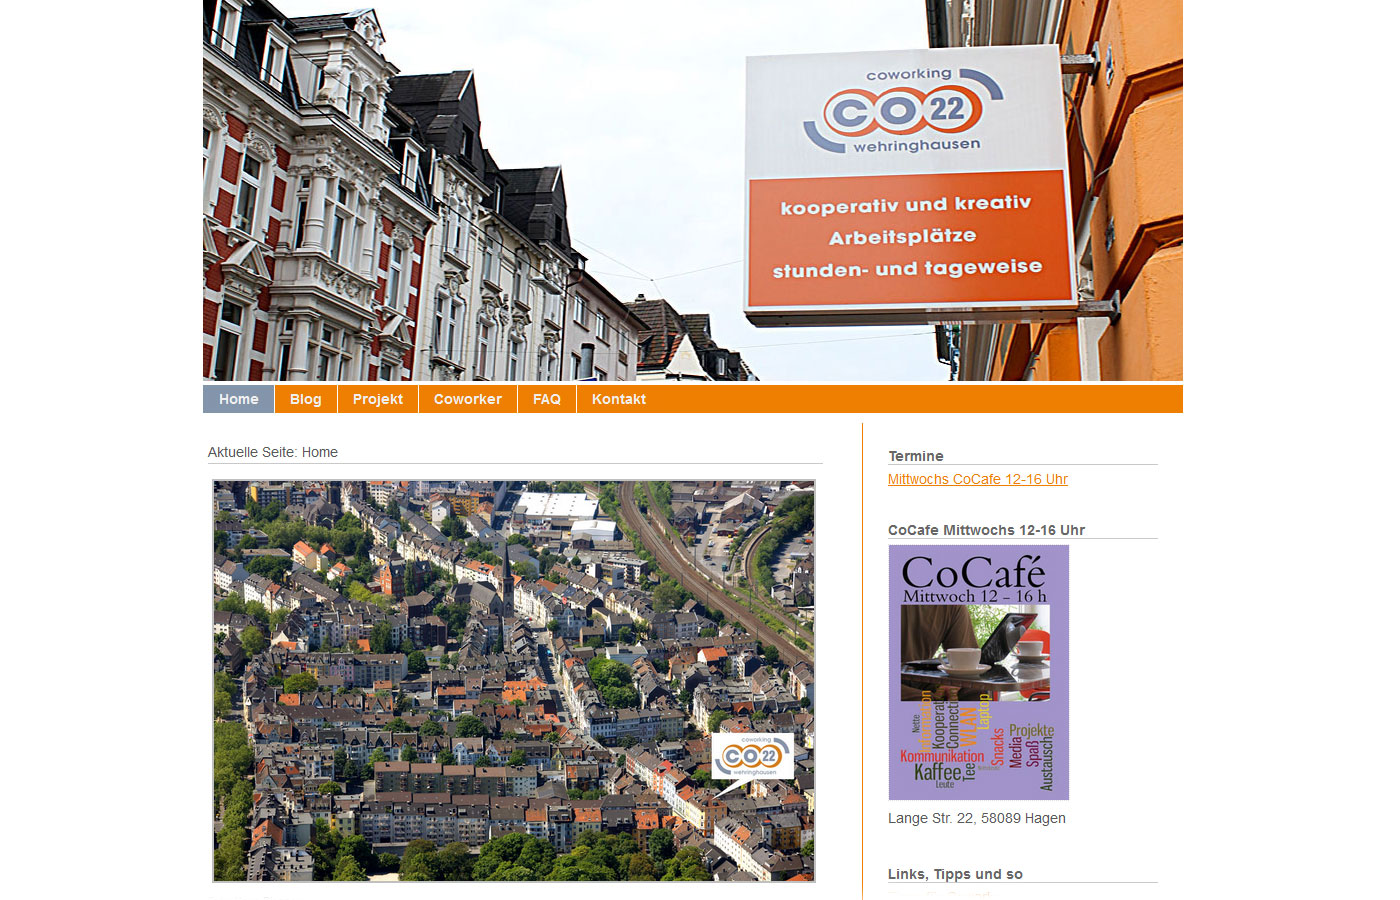 co22 - coworking space Wehringhausen